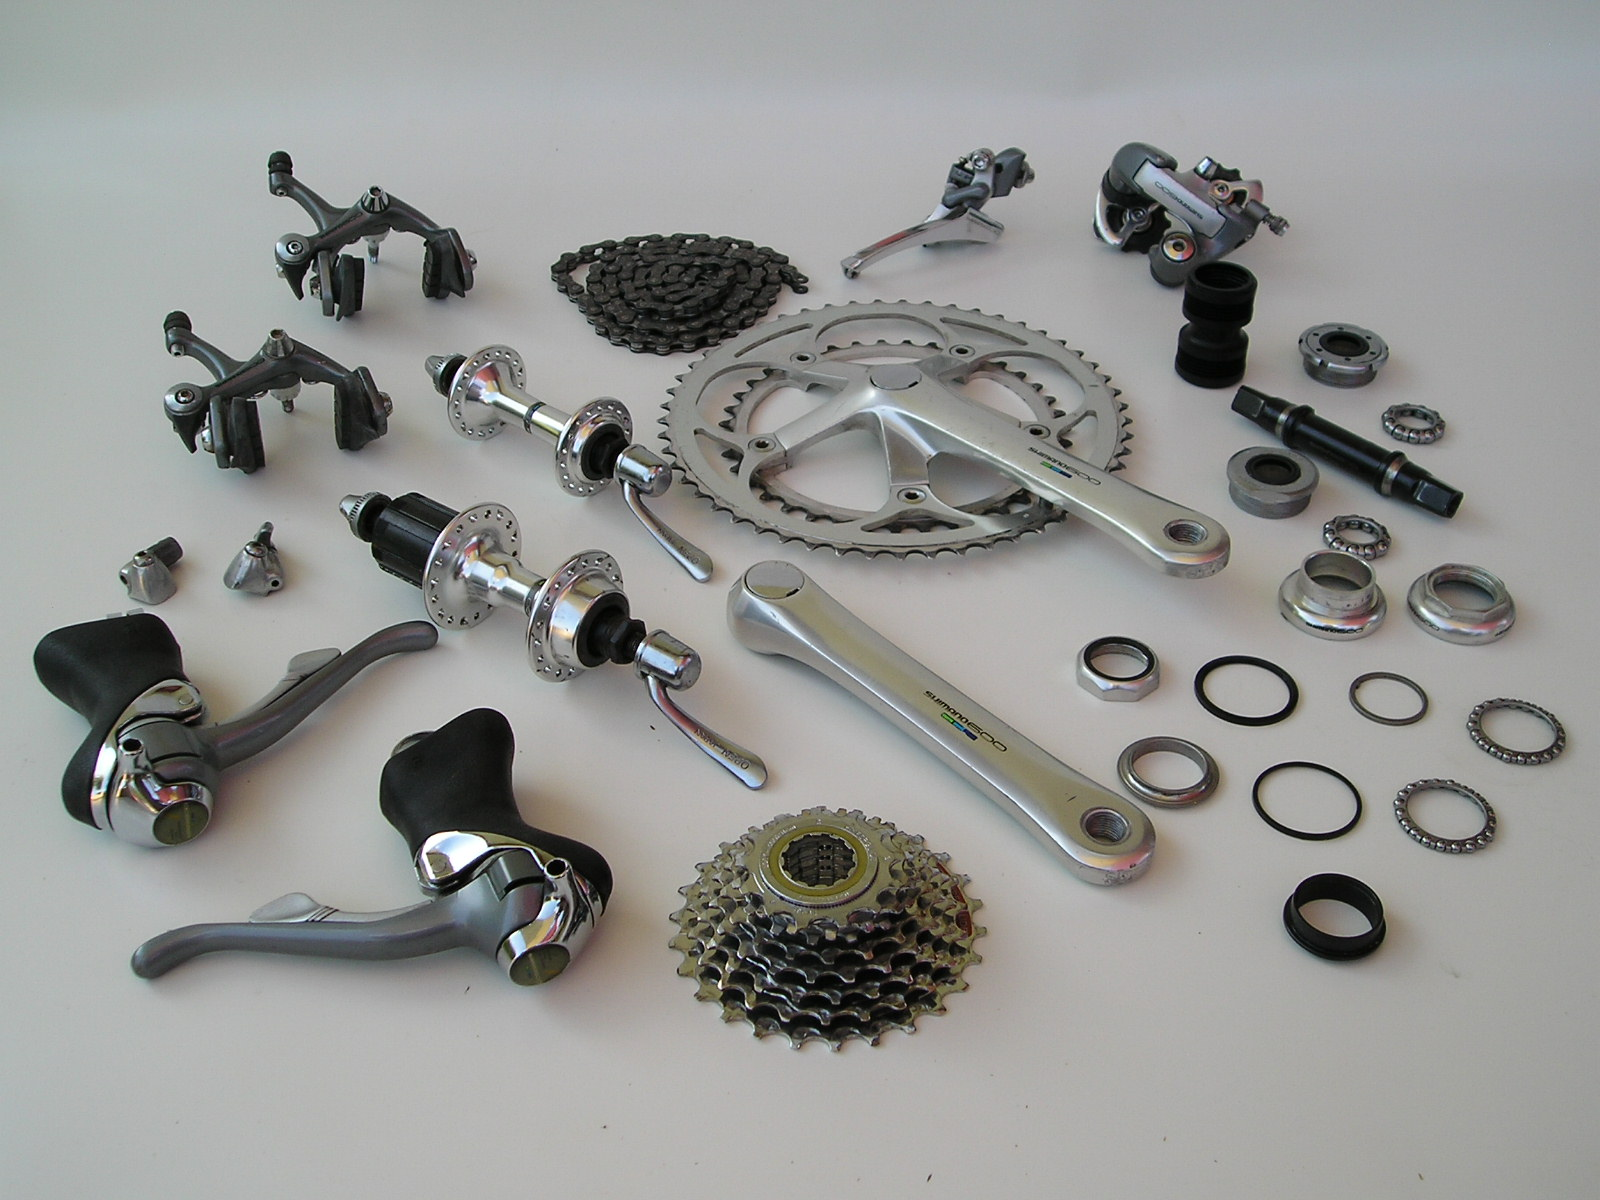 Sti For Sale >> For Sale: Shimano 600 tricolor groupset with STI 8 speed ...